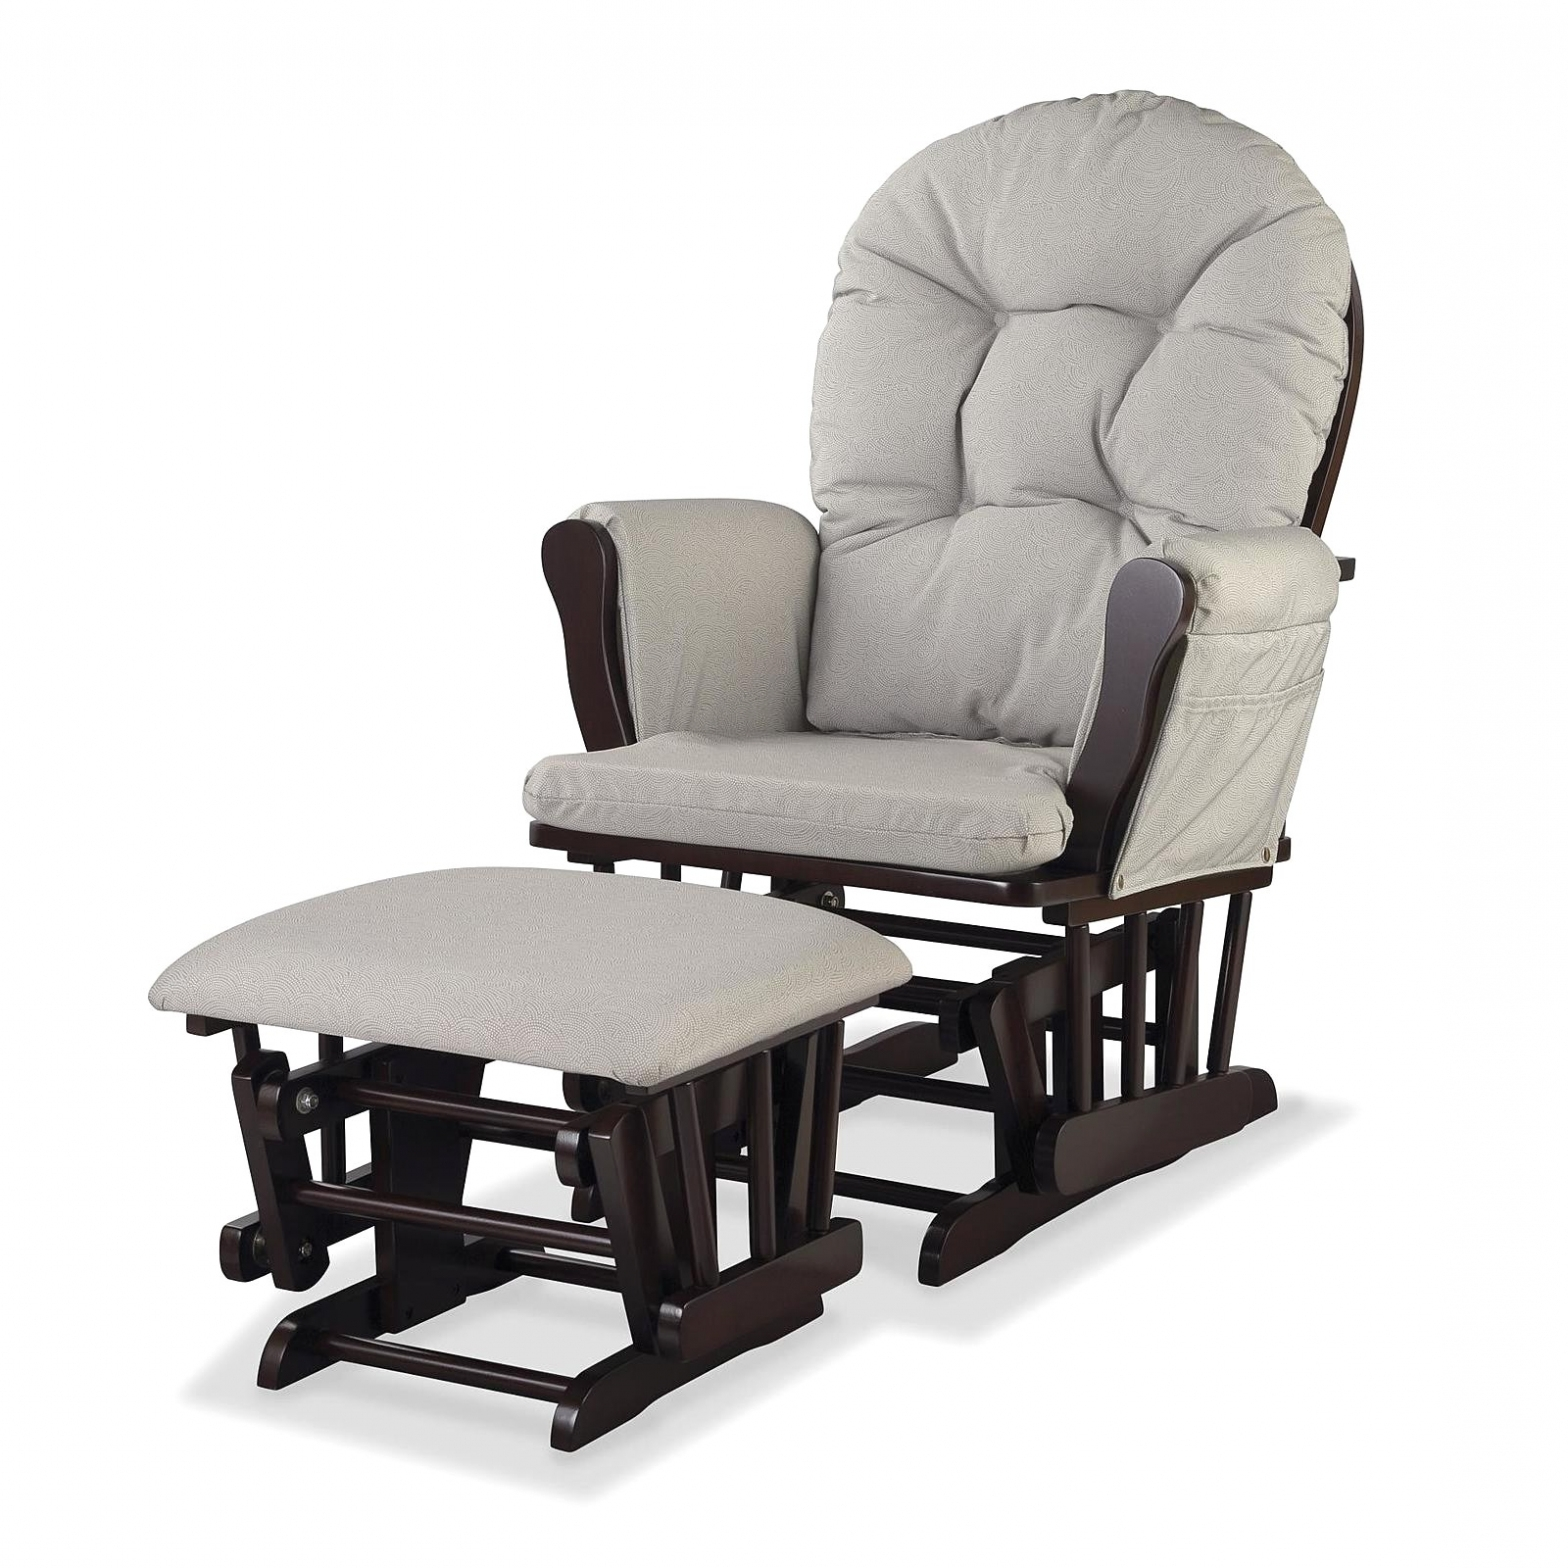 Latest Rocking Chairs At Target Inside Furniture: Nursery Rocking Chair With Ottoman Glider Baby Rocker (View 8 of 15)